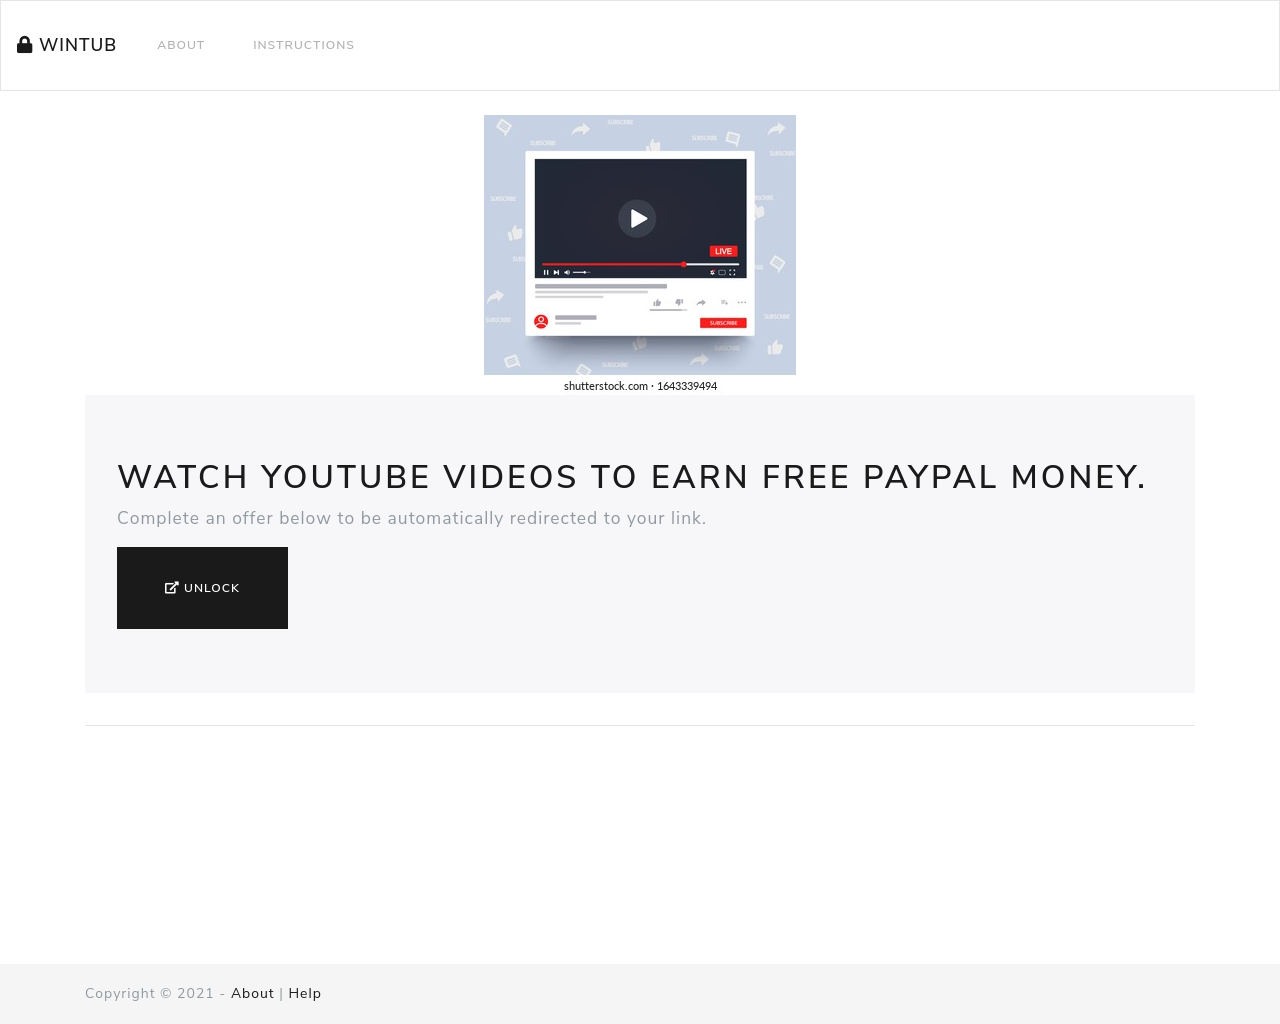 Watch YouTube videos to earn free PayPal money.